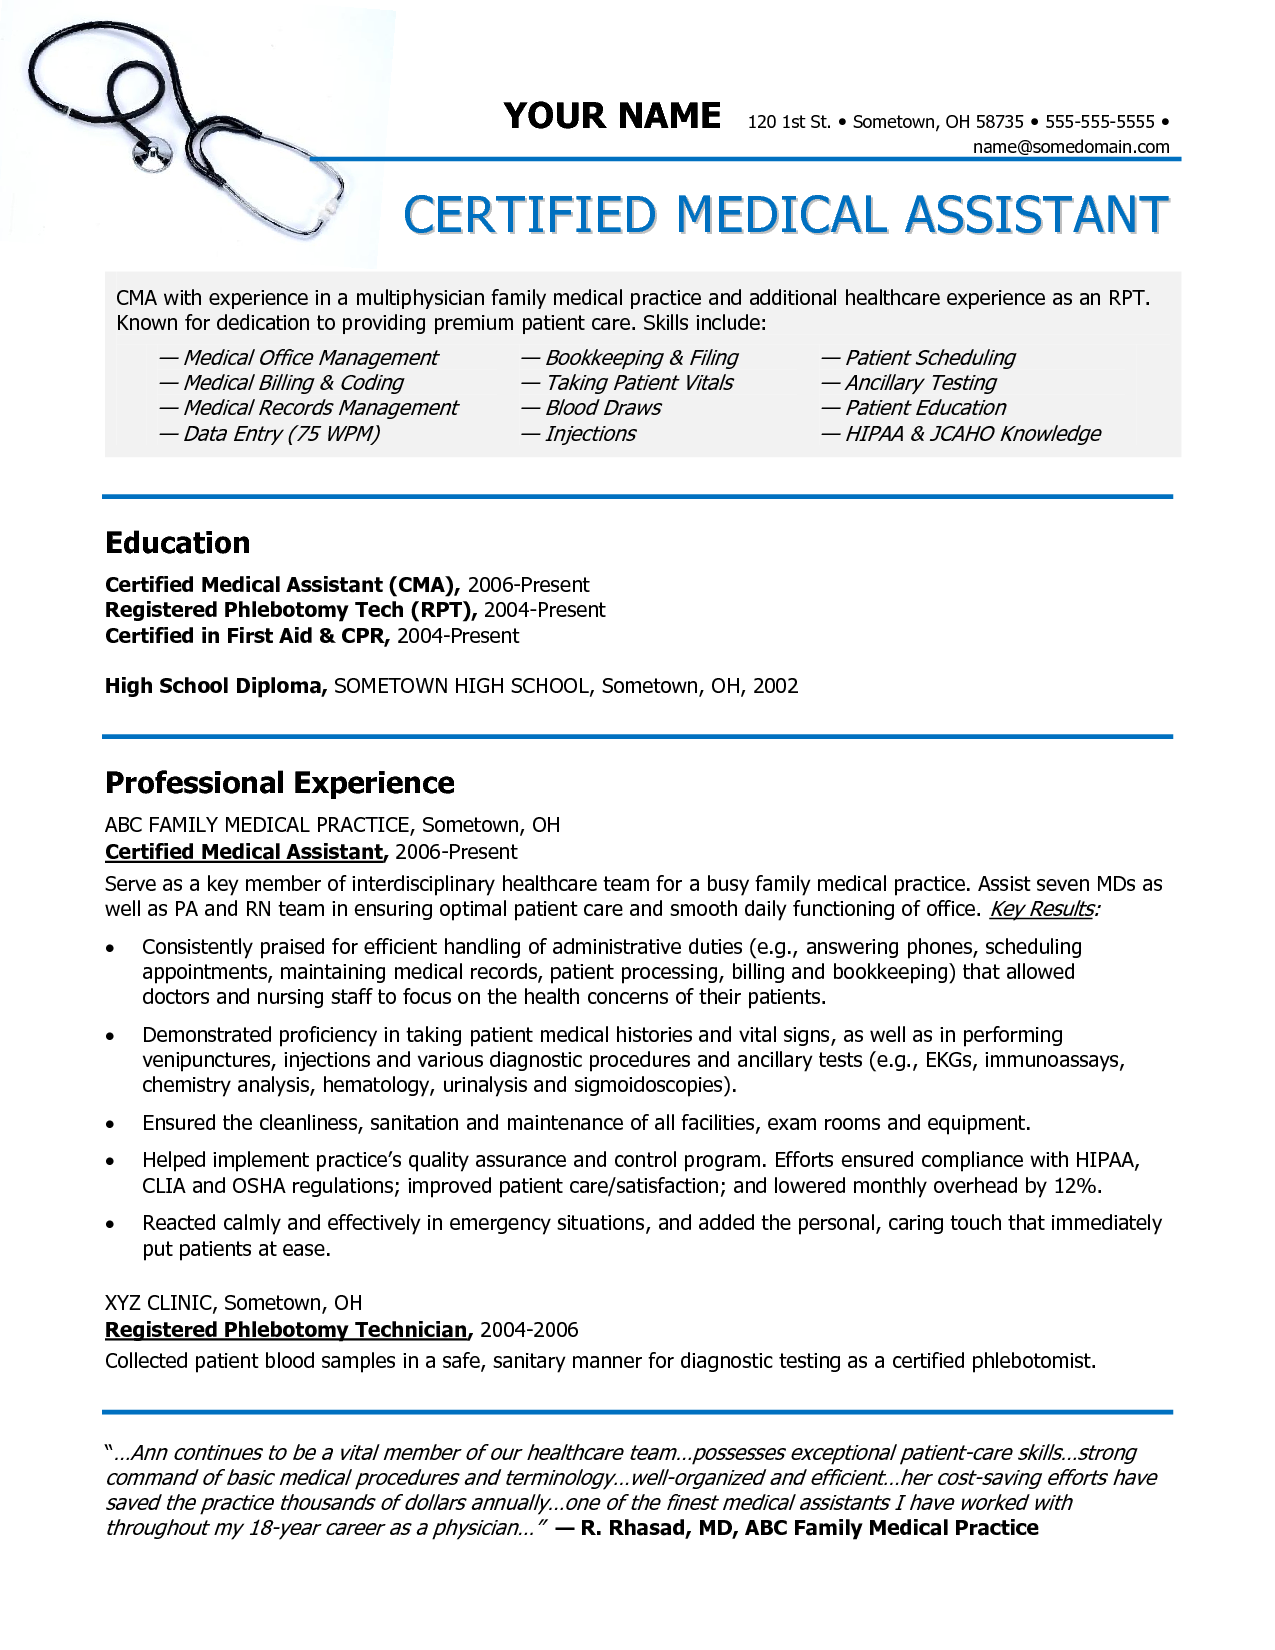 medical assistant resume entry level examples 18 medical assistant - Medical Assistant Resume Samples